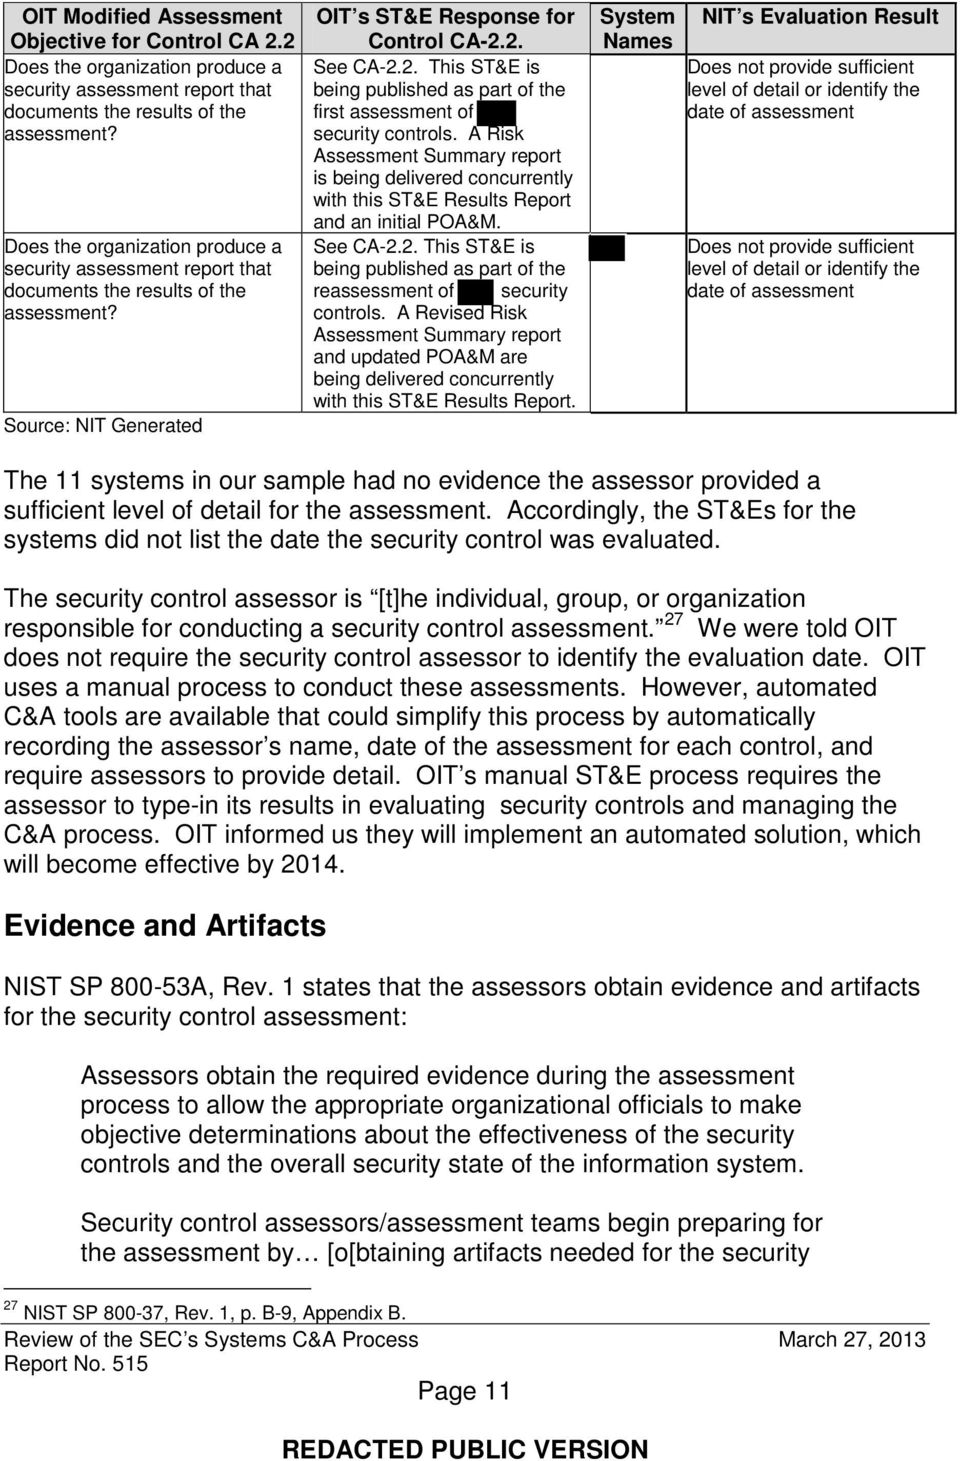 2. See CA-2.2. This ST&E is being published as part of the first assessment of security controls.